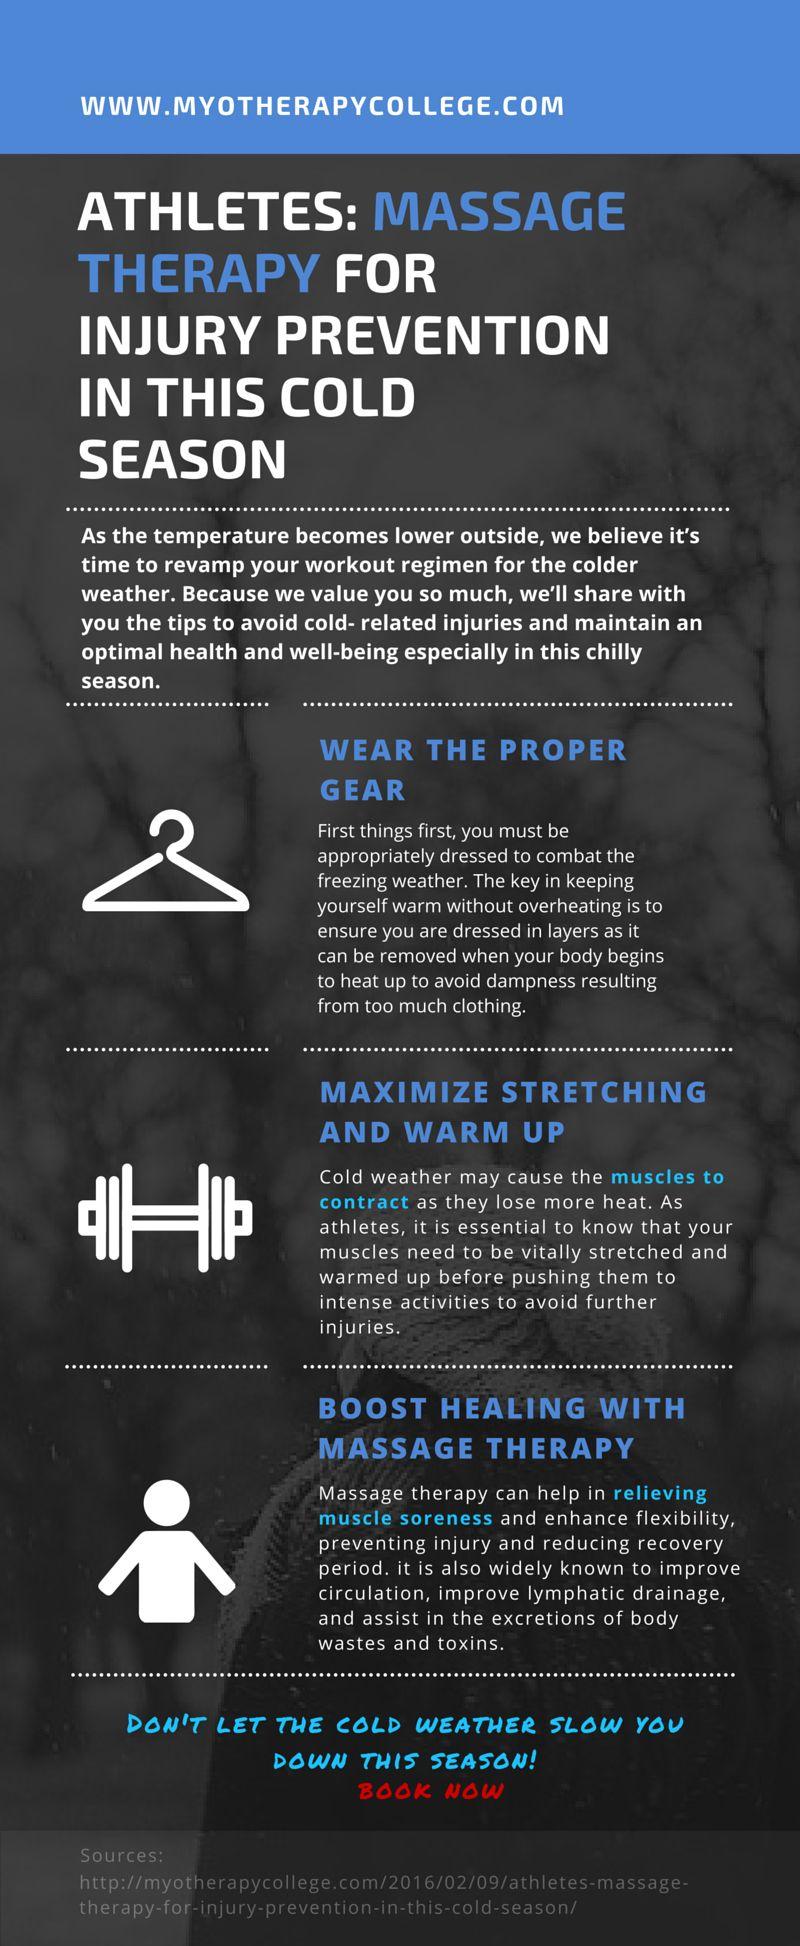 Check out the ways to avoid coldrelated injuries in this